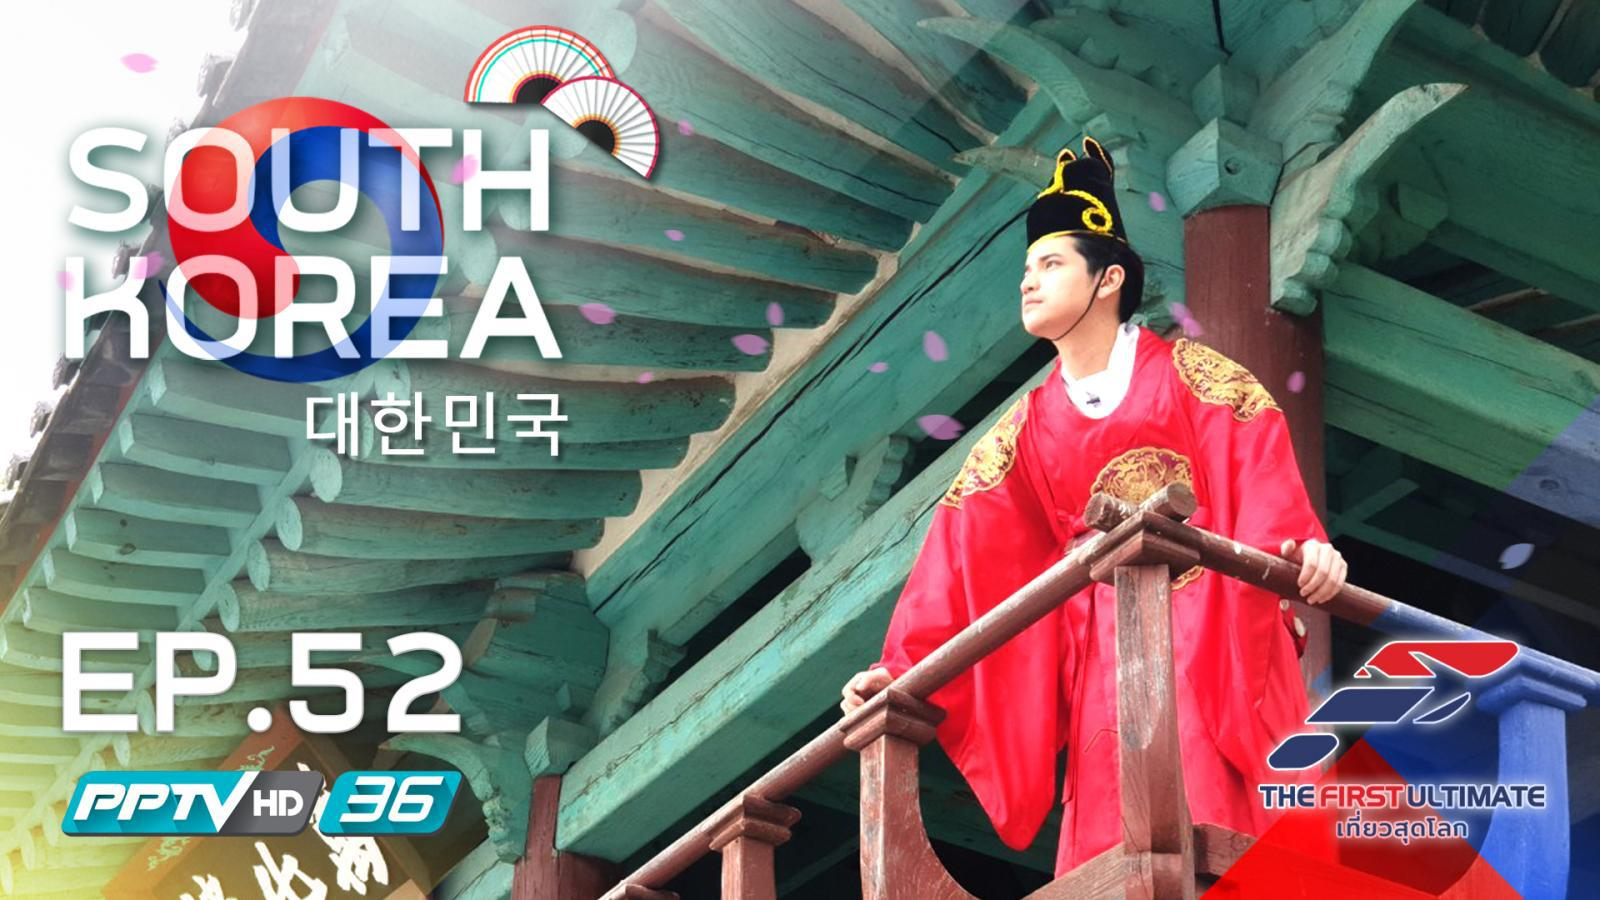 South Korea ตอน 1